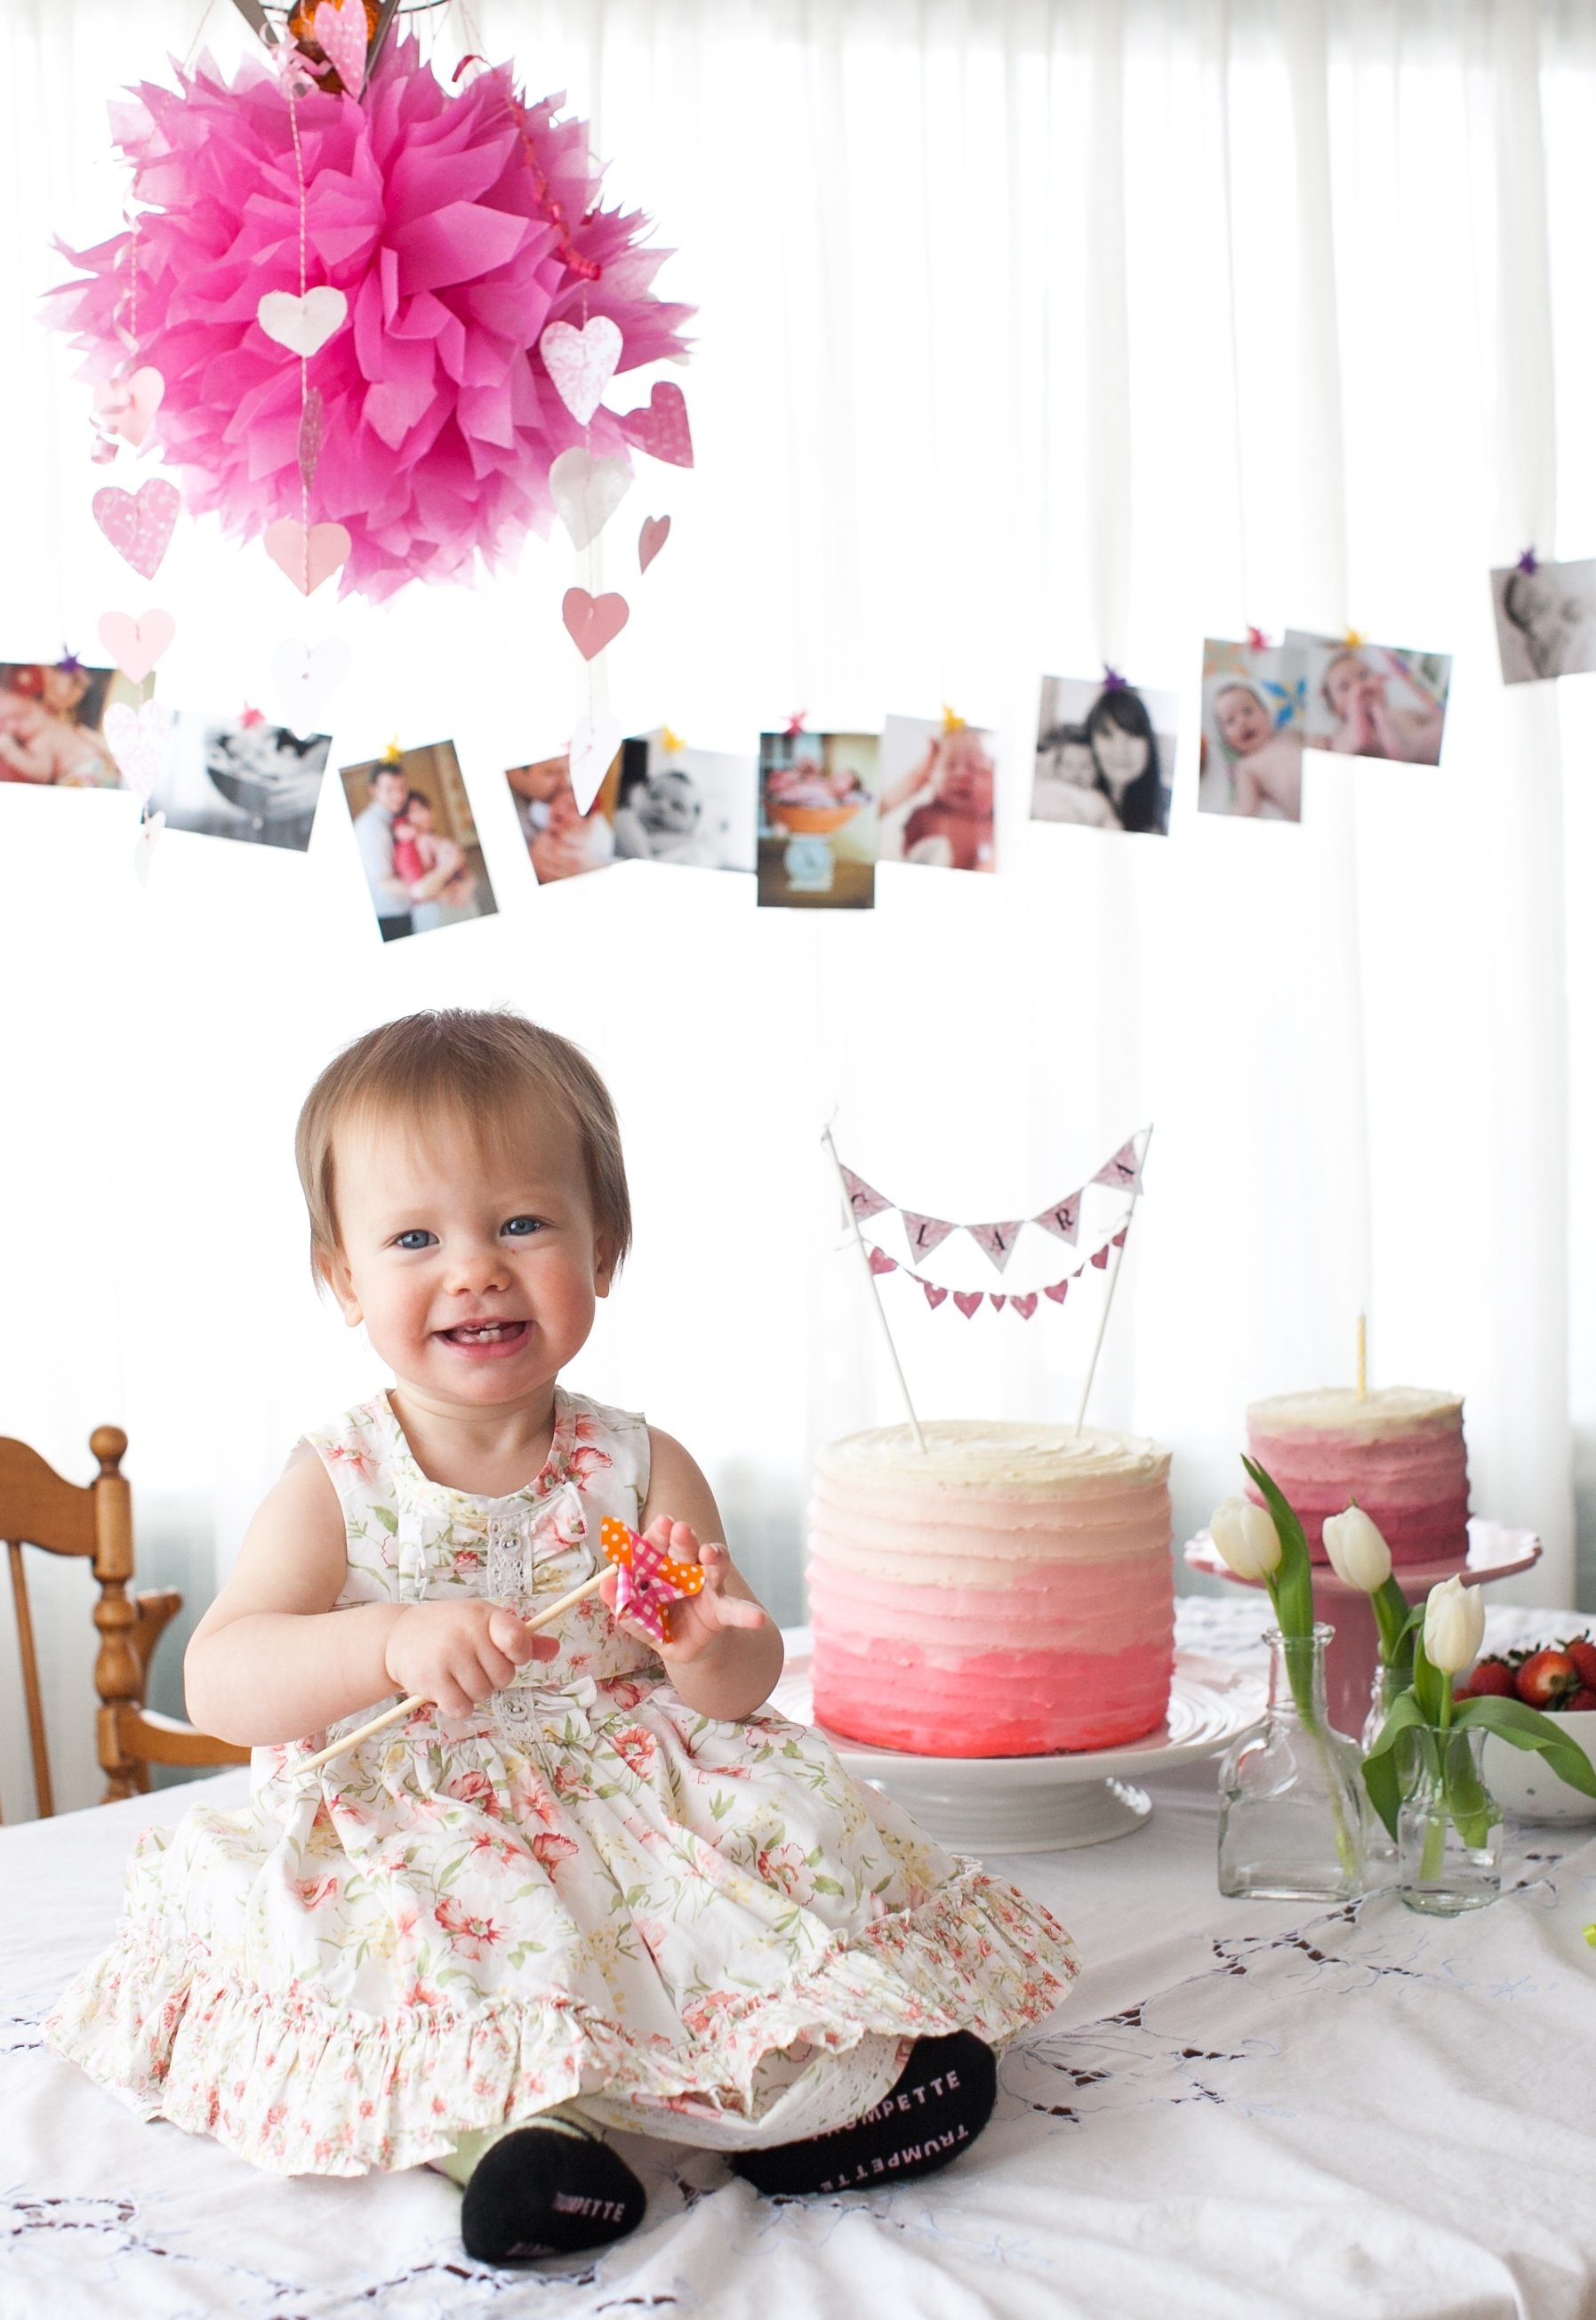 10 Lovely First Birthday Photo Shoot Ideas first birthday party ideas recipe apple spice cake with maple 2020